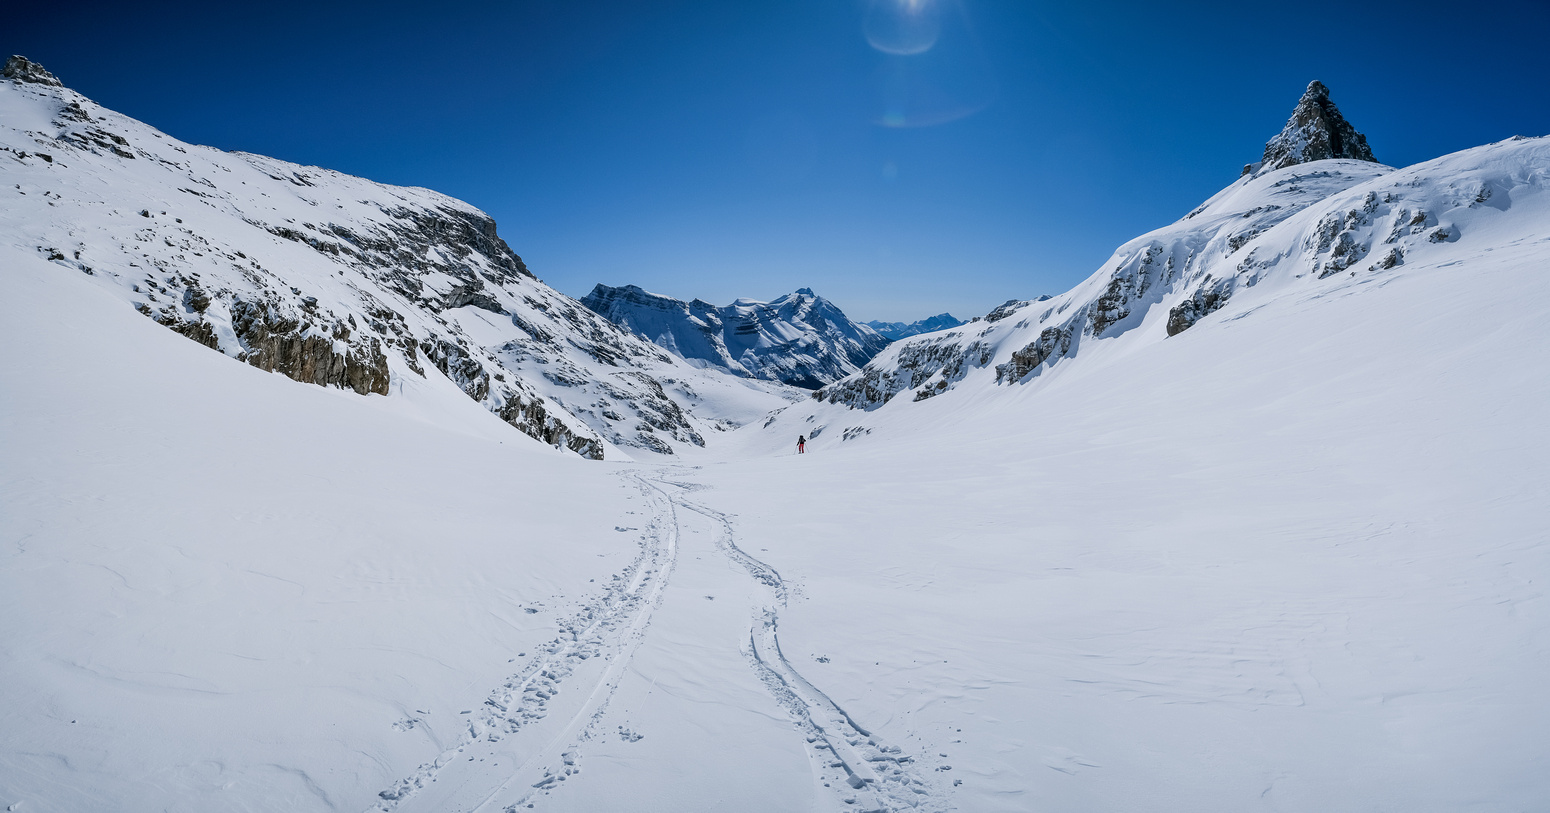 Skiing down towards the pristine hanging valley between Puzzle (L) and Dolomite (R).